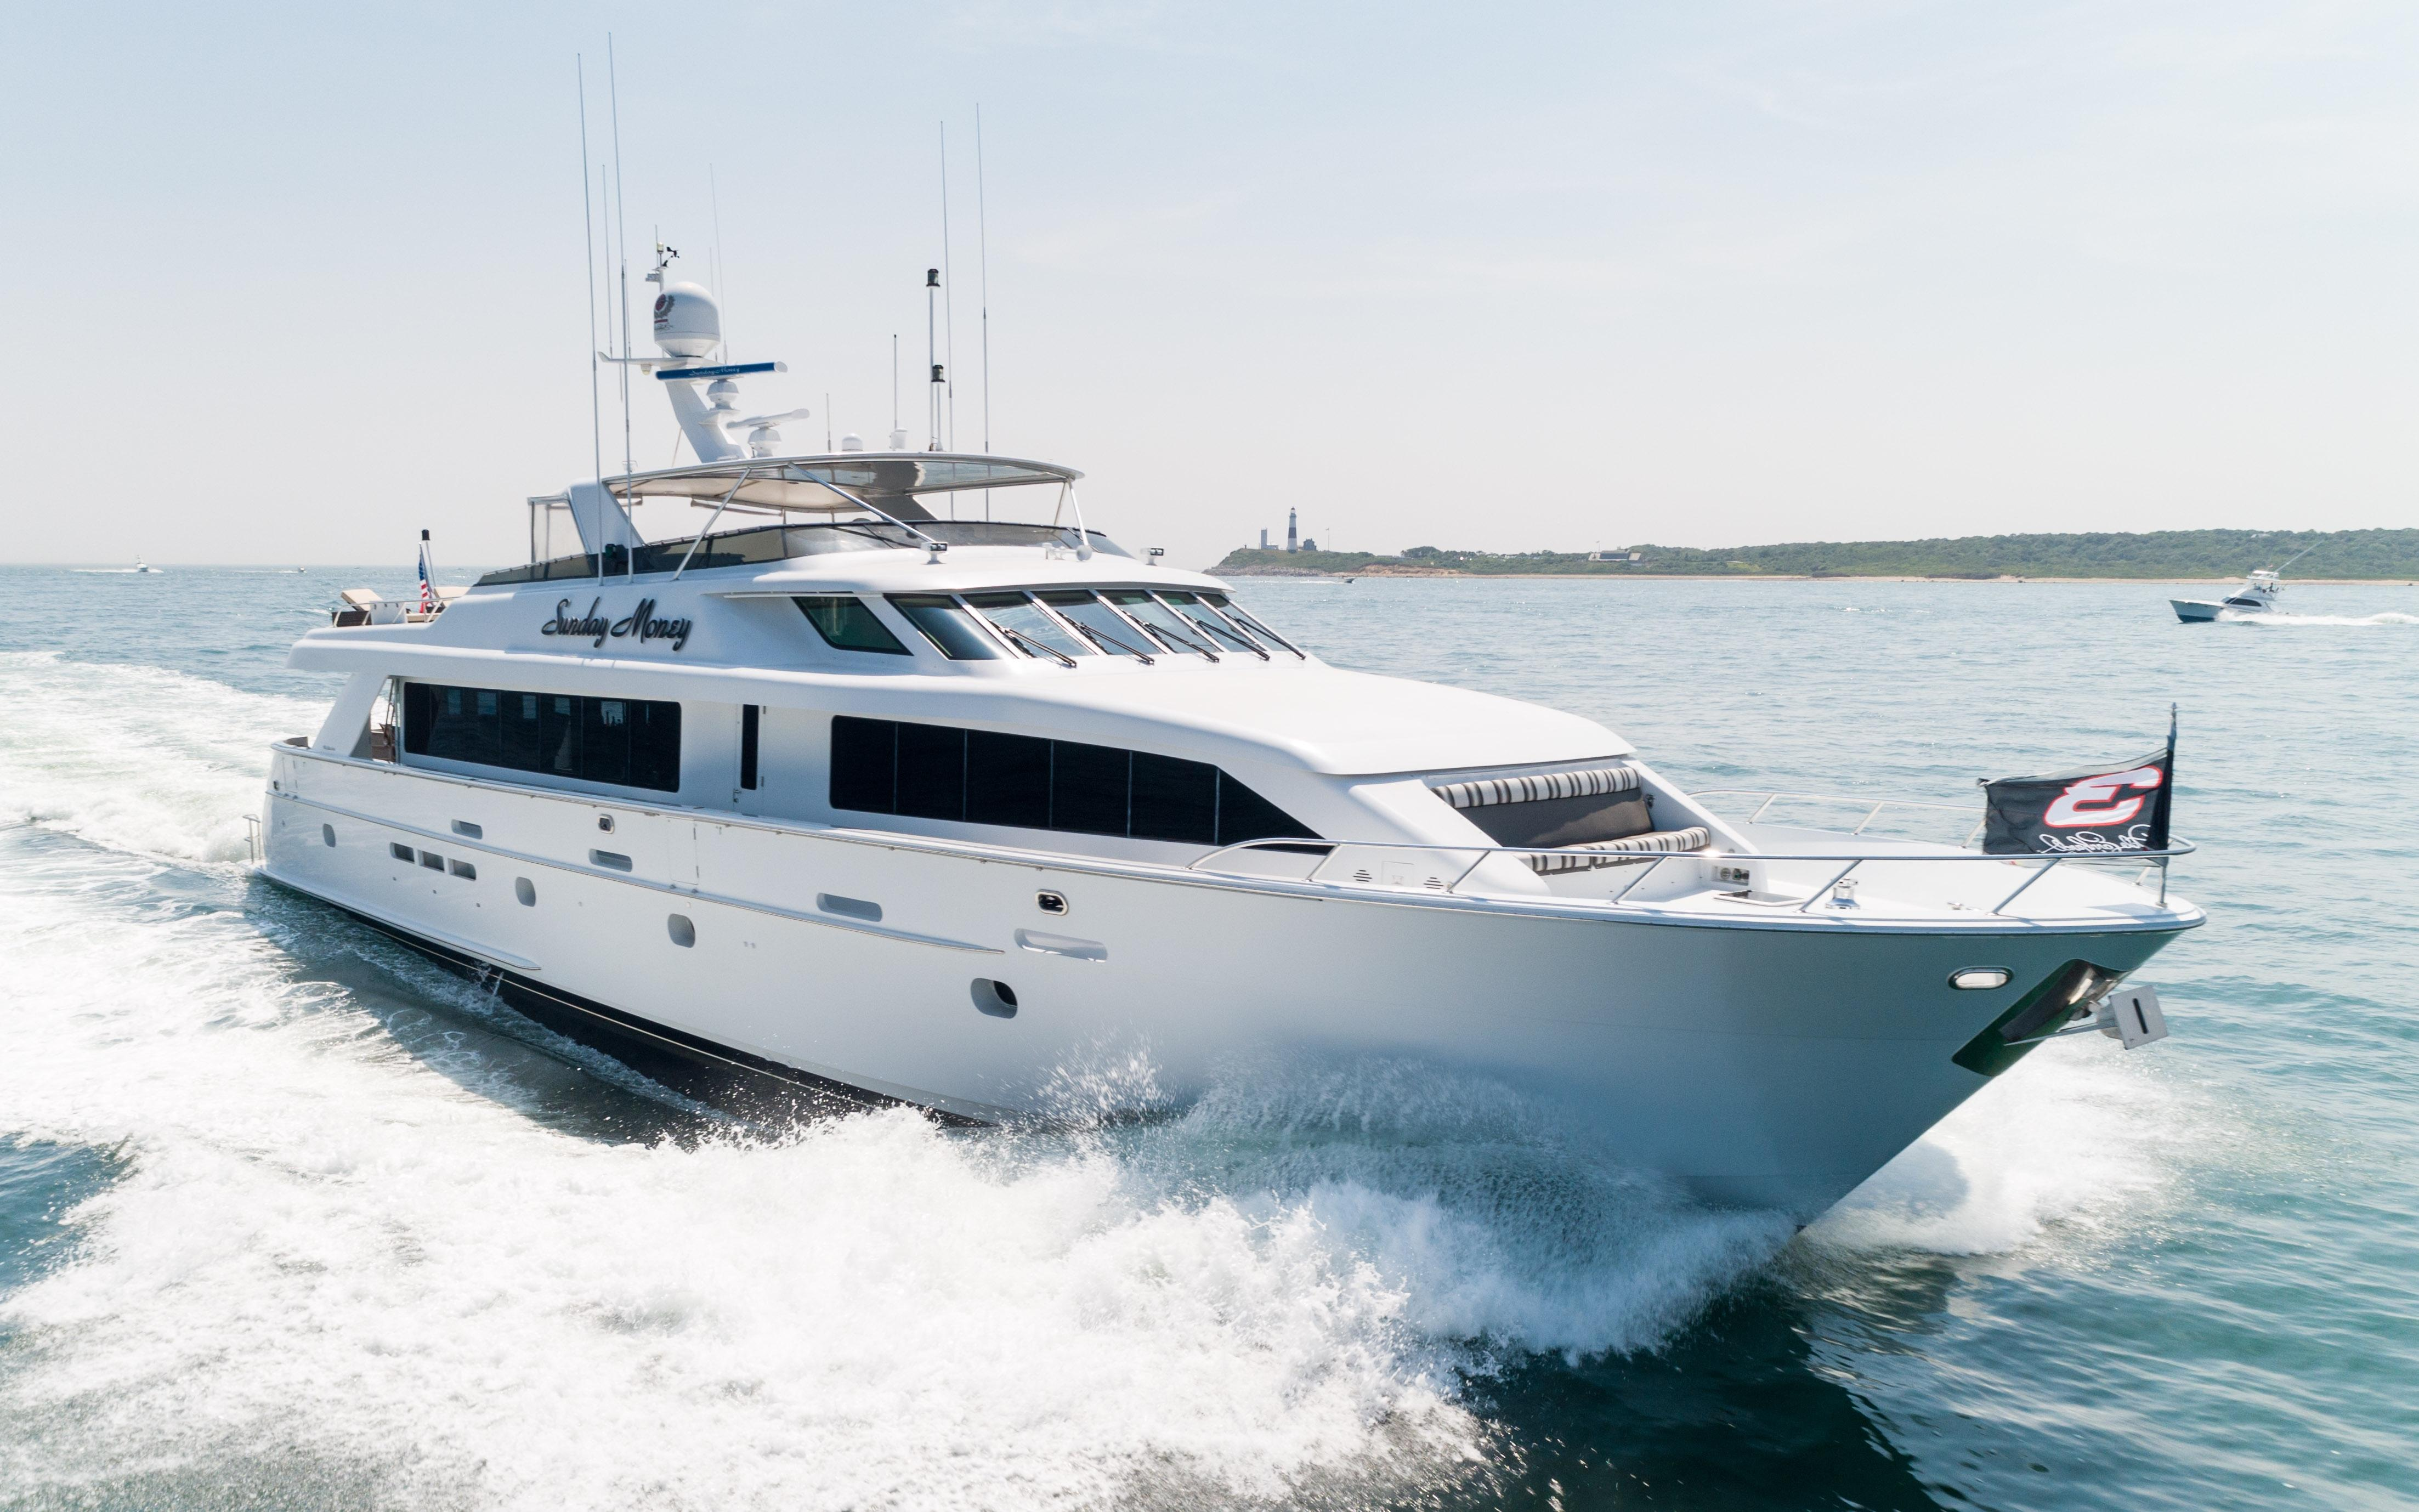 100 Foot Yacht >> Sunday Money Hatteras 2001 100 Motor Yacht 100 Yacht For Sale In Us